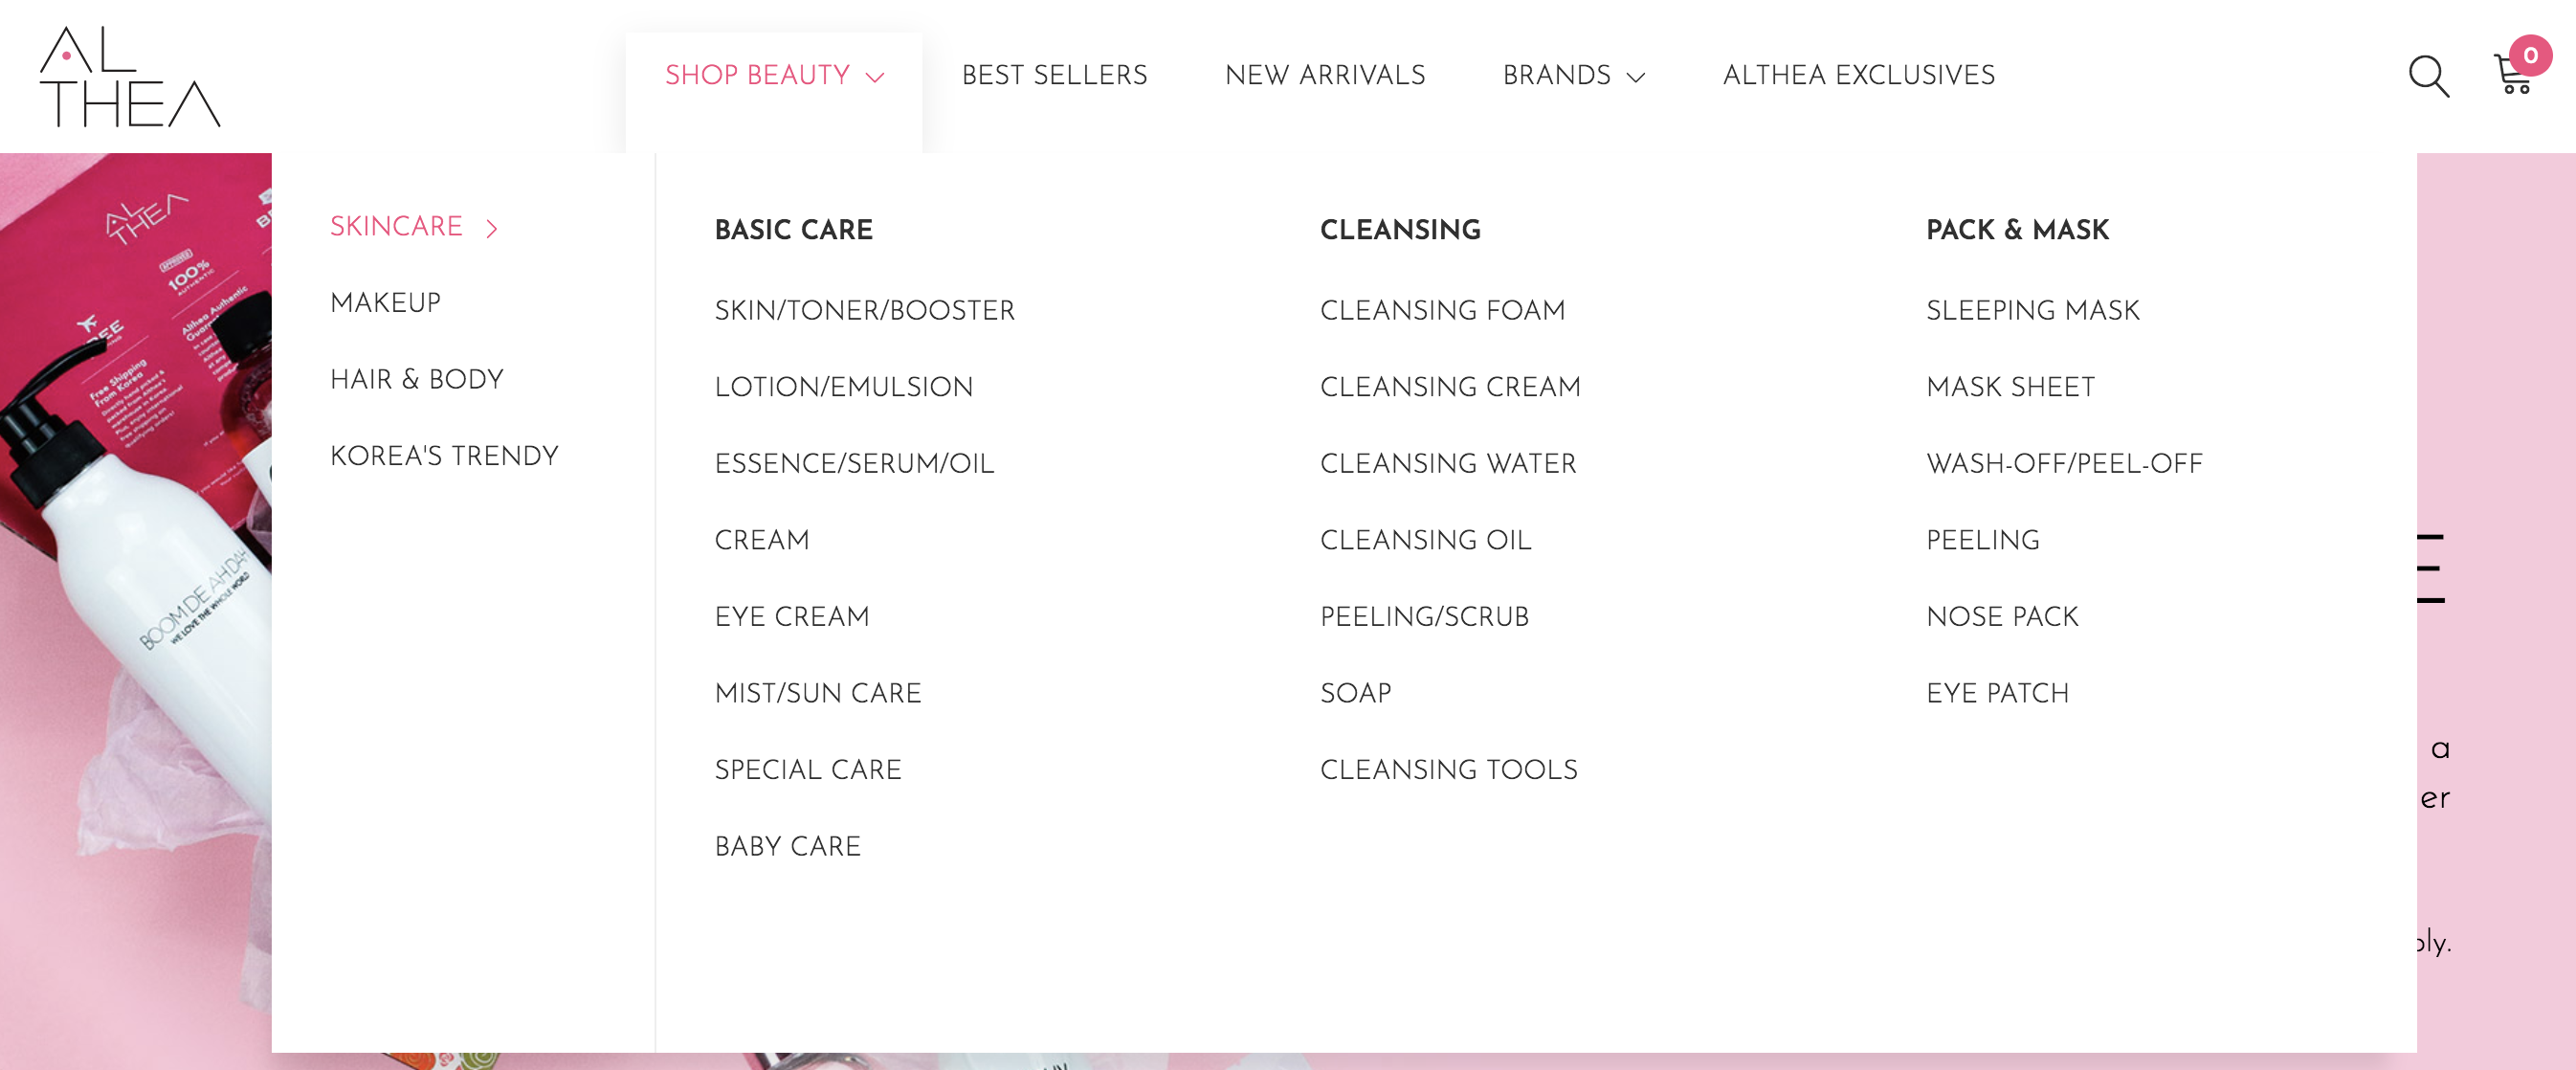 Althea Product Categories